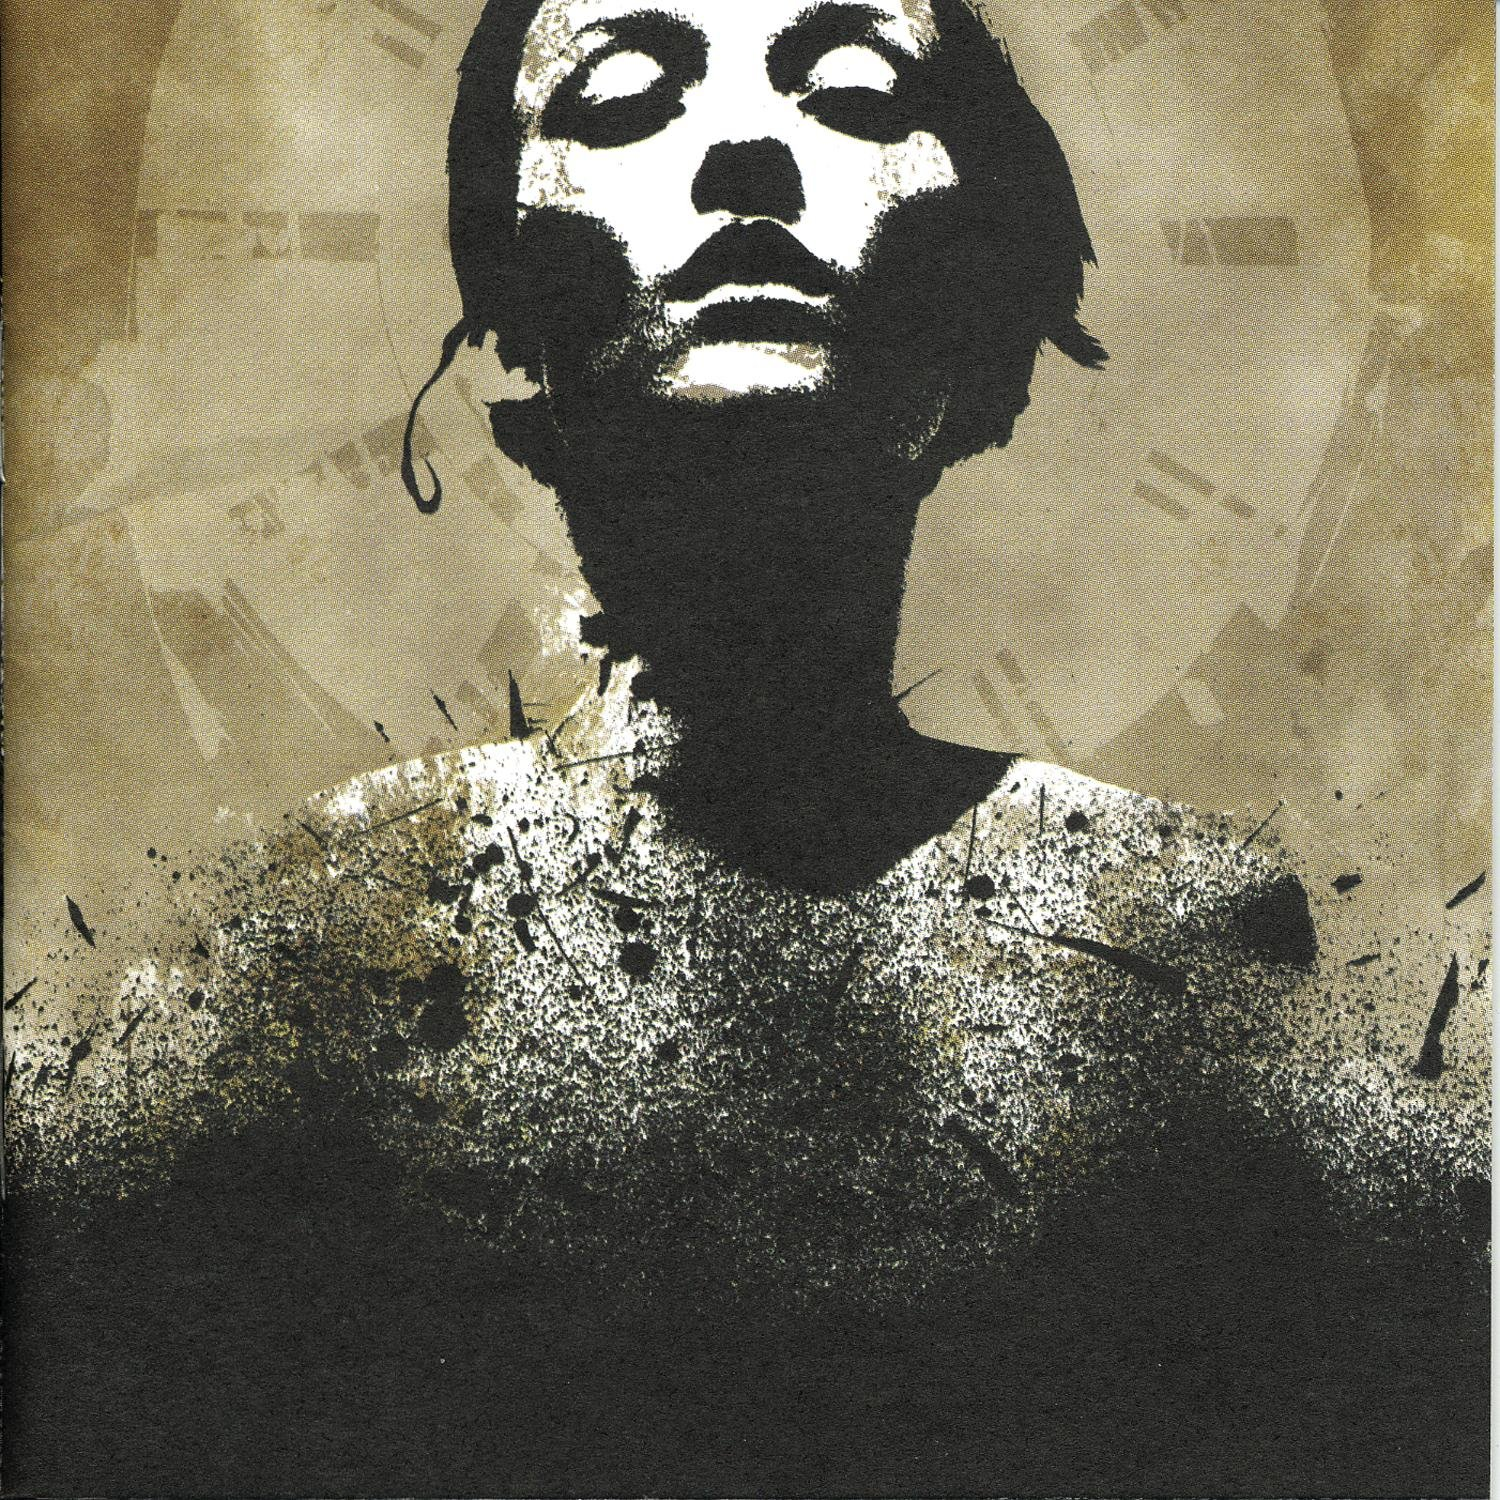 CD : Converge - Jane Doe (CD)